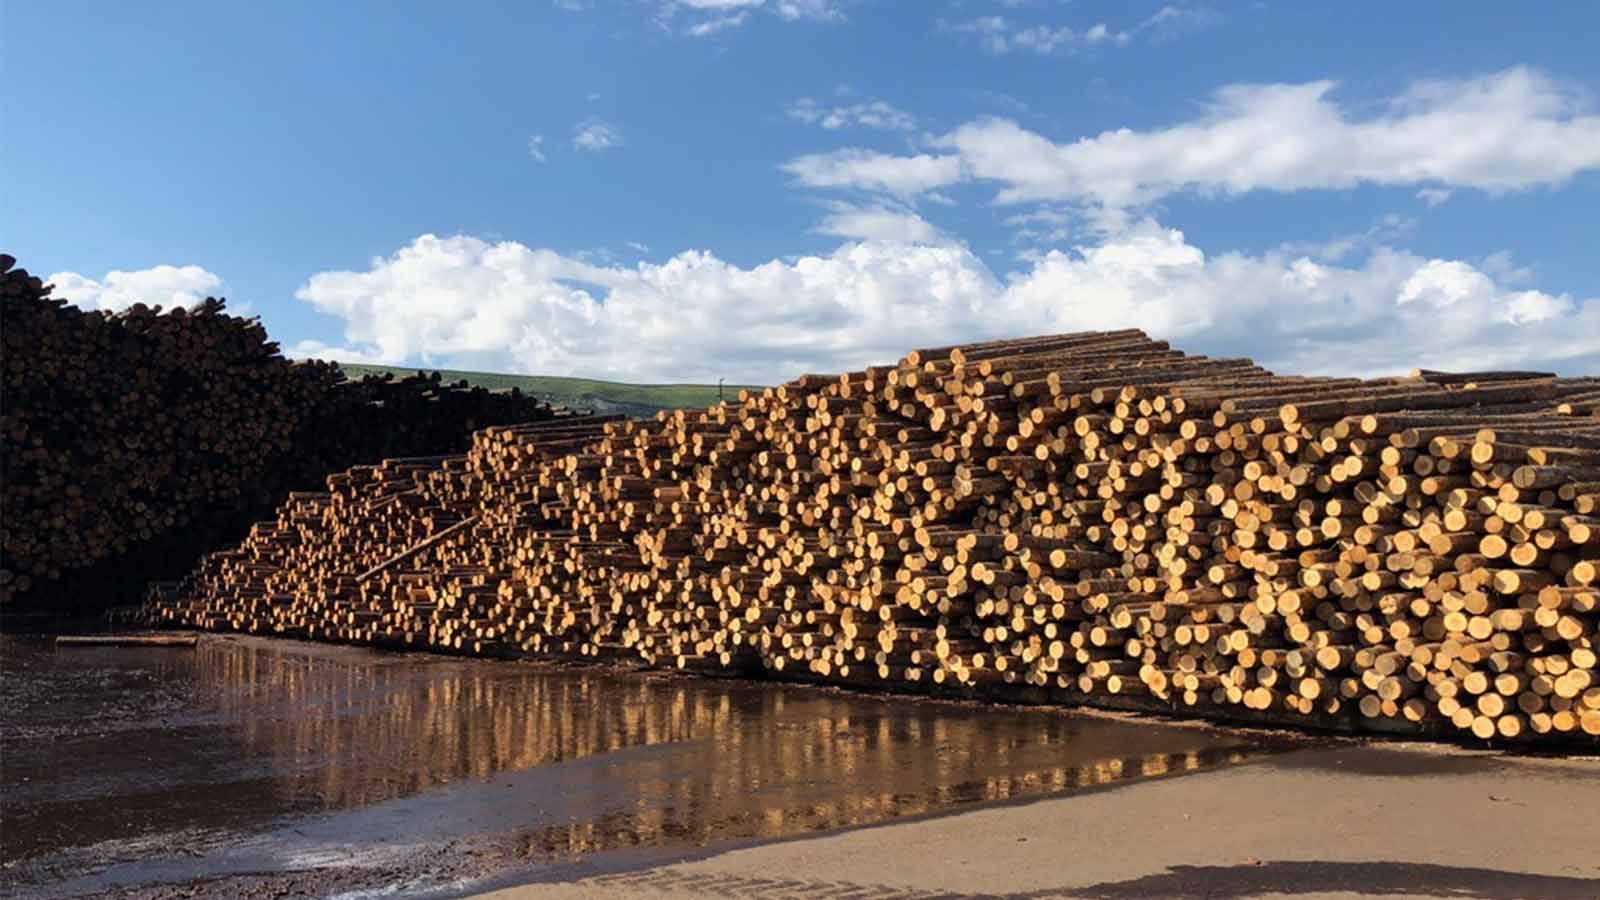 a-large-stockpile-at-a-lumber-yard